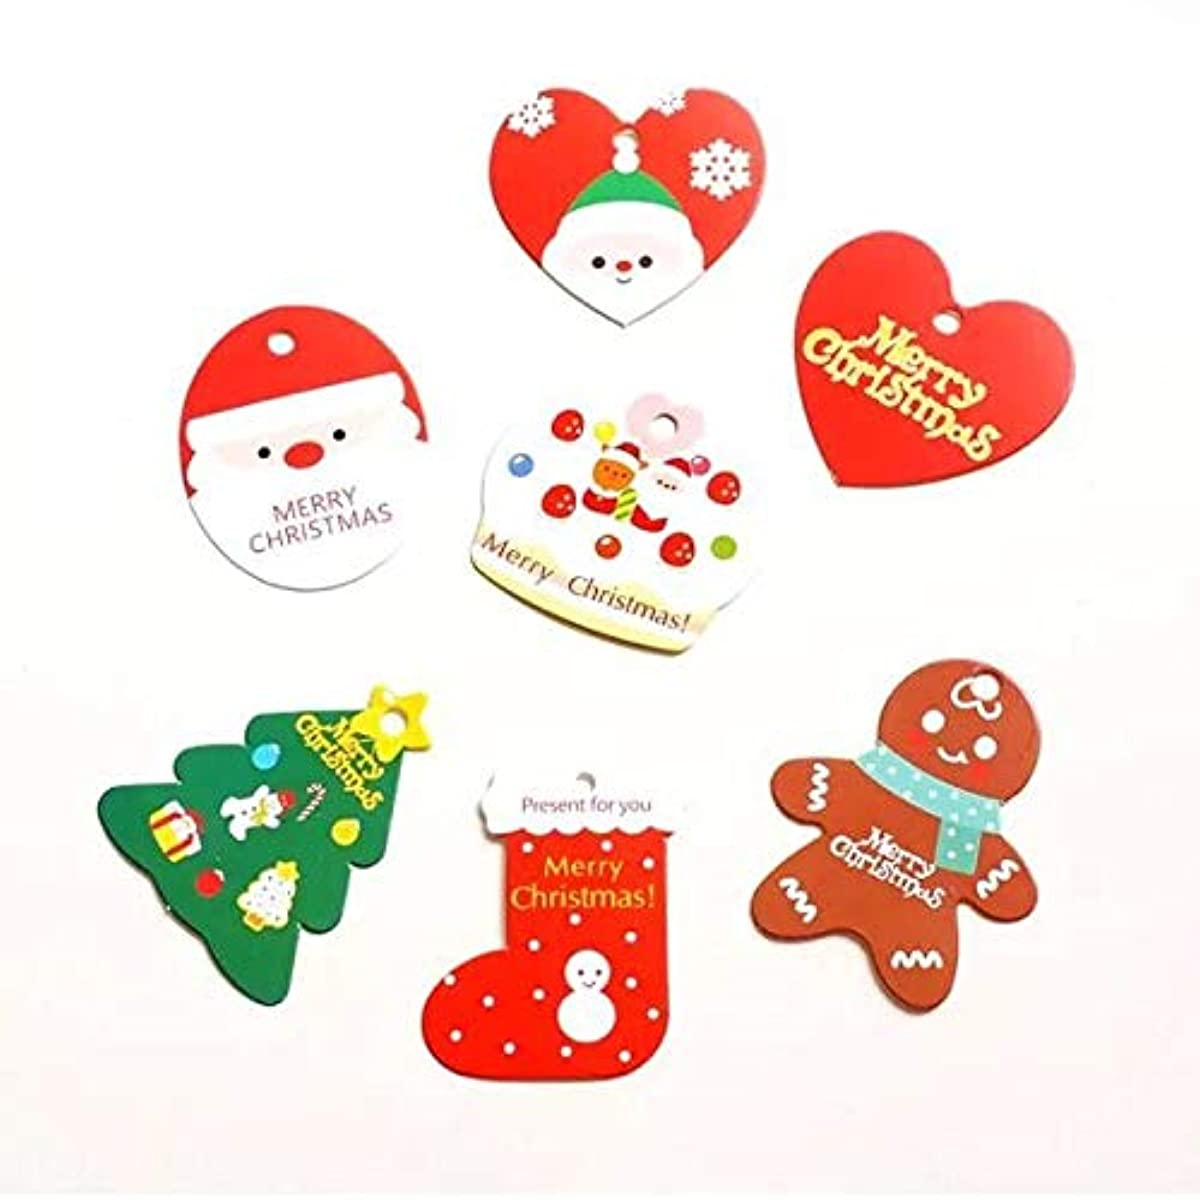 Cocobee Christmas Gift Tags for Christmas Gift Wrapping with String for Christmas Party Xmas Presents & Gifts Wrapping Accessories (7 Designs)